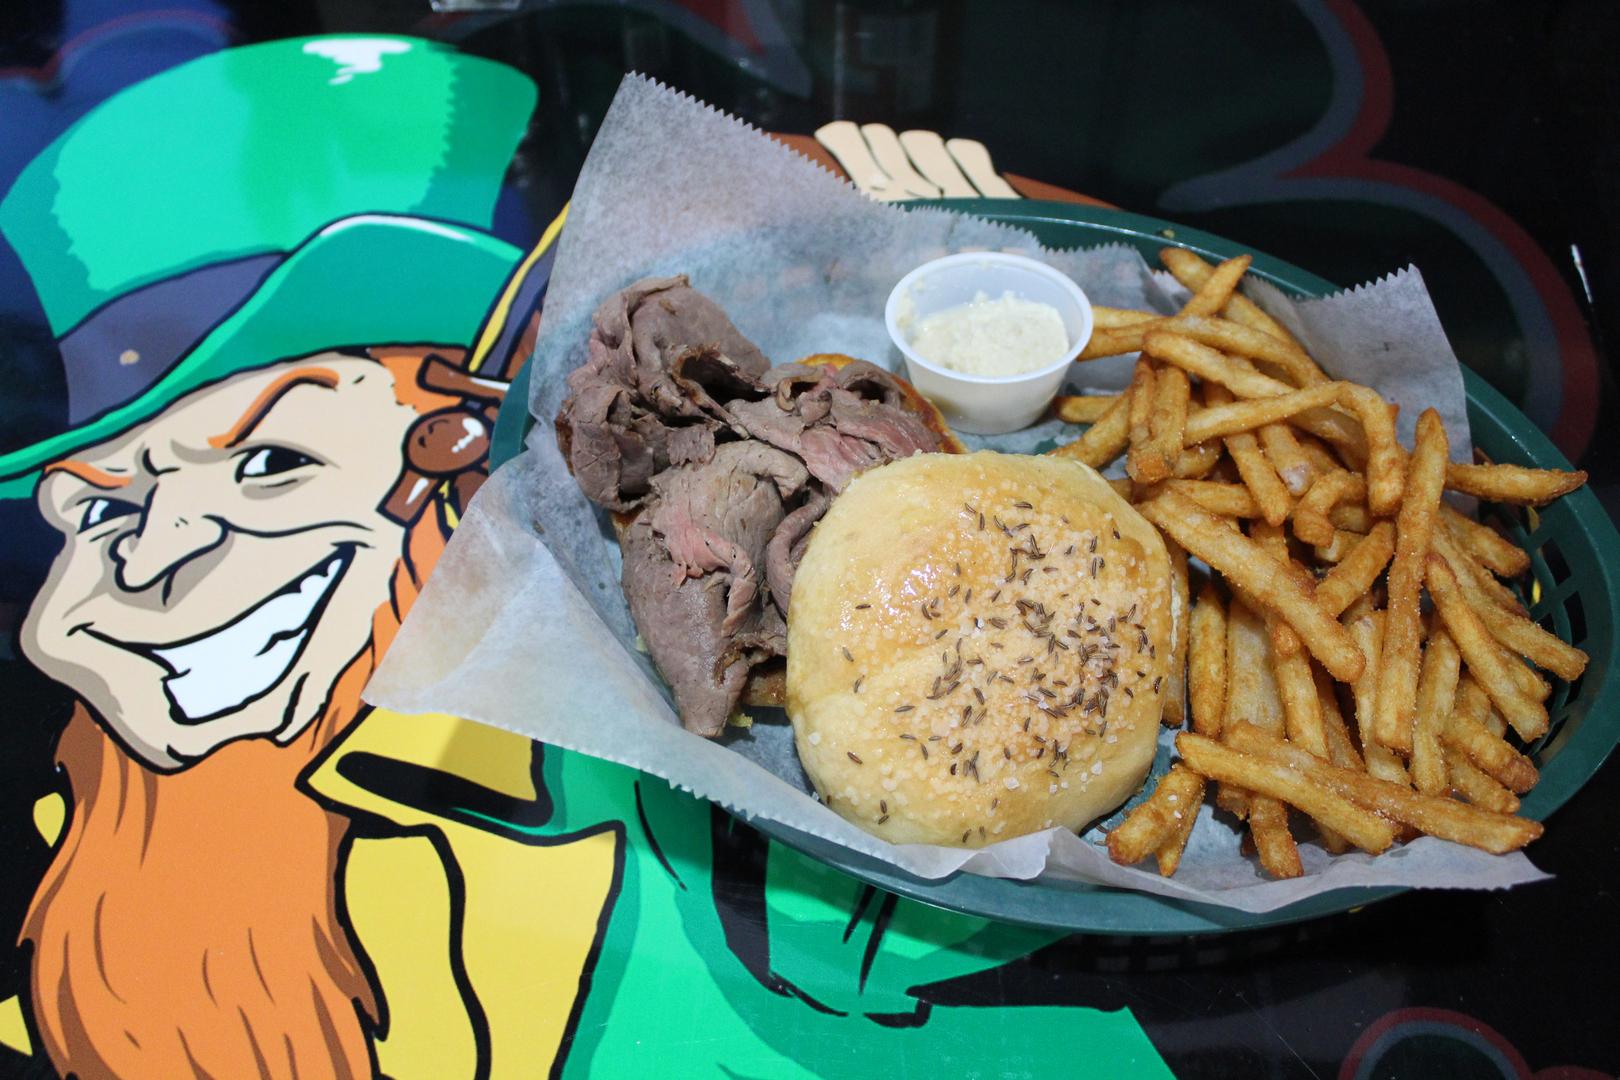 roast beef on a roll with a side of french fries on a table with a picture of a leprechaun